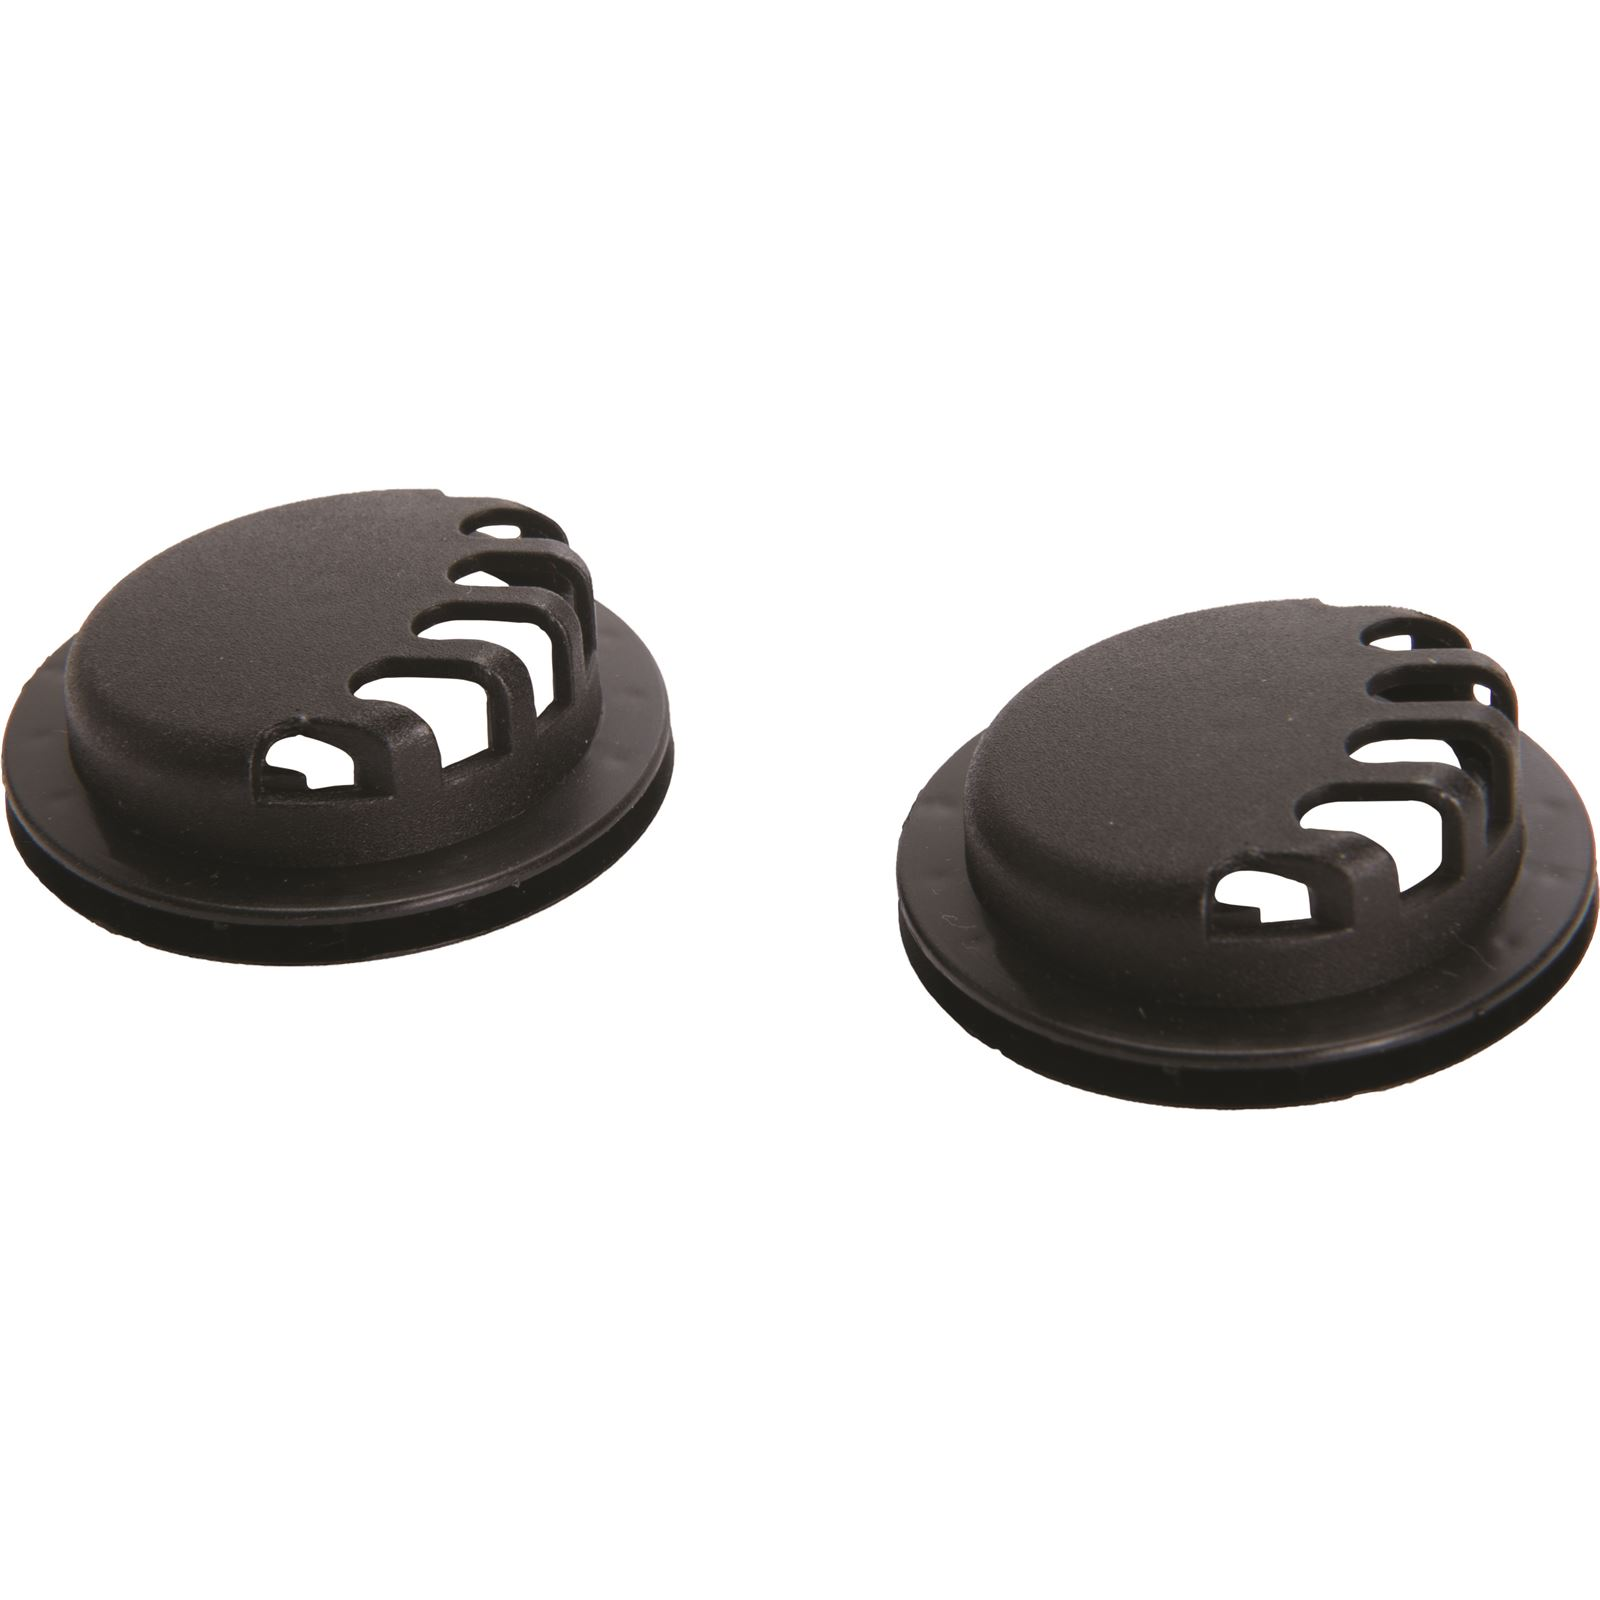 RZ Mask RZ Mask Replacement Vent Caps